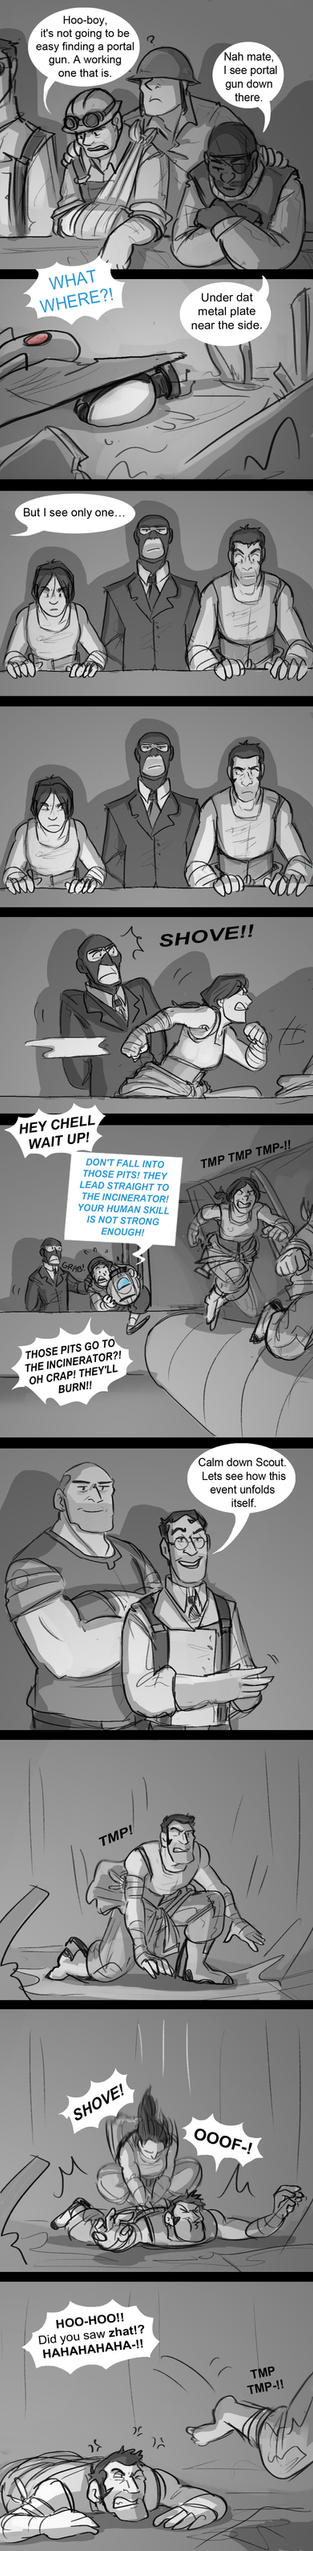 TF2-Long Lost Pg. 75 by MadJesters1